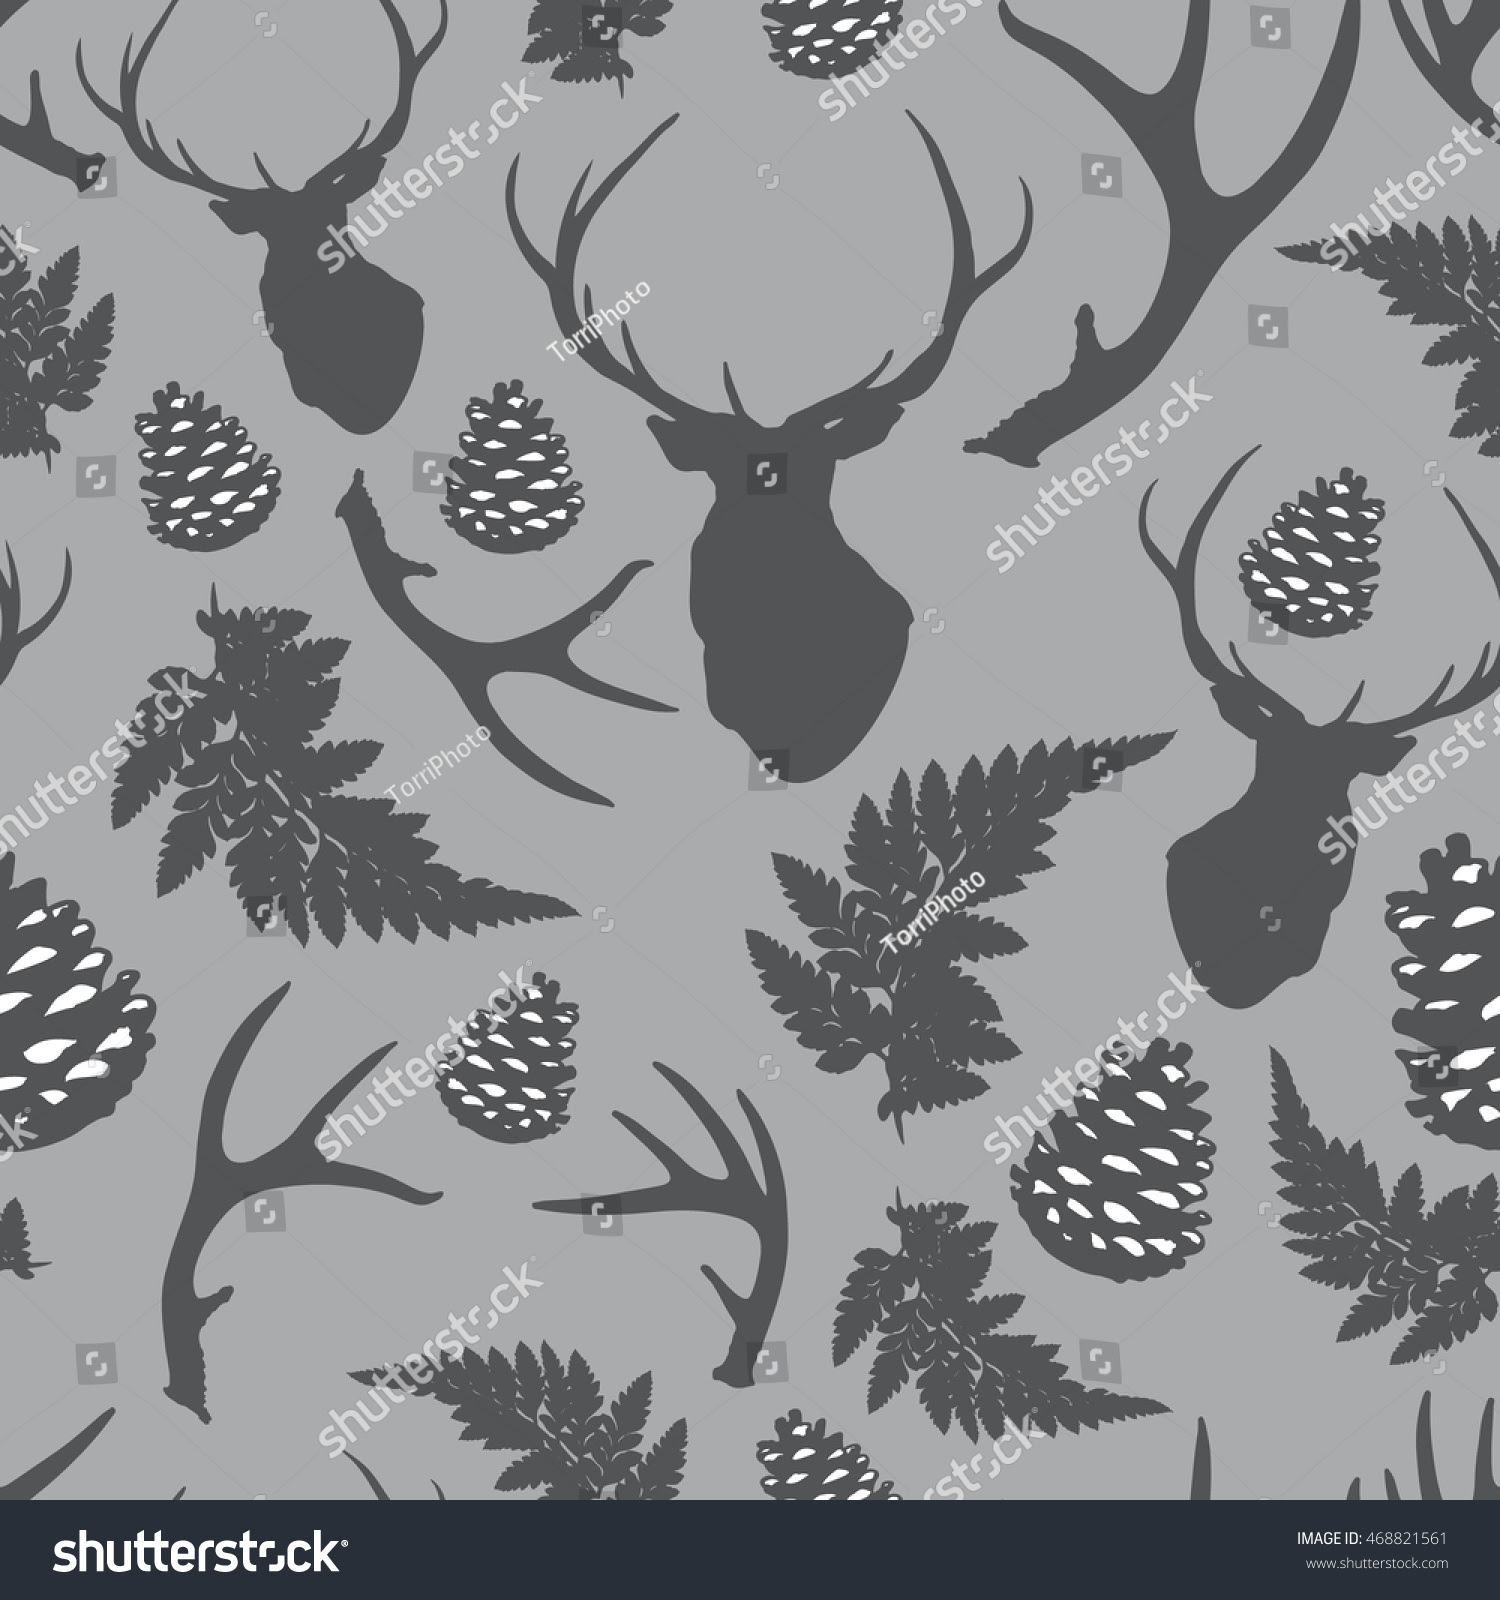 acorn, animal, antler, autumn, background, brown, card, christmas, cones, dark, deer, design, earth, element, fabric, fall, fashion, fauna, fern, fir, flora, forest, gray, illustration, leaf, mammal, nature, oak, paper, pattern, pine, plants, print, reindeer, scandinavia, seamless, season, silhouette, stag, style, textile, texture, vector, wallpaper, wild, wildlife, winter, wood, woodland, wrapping